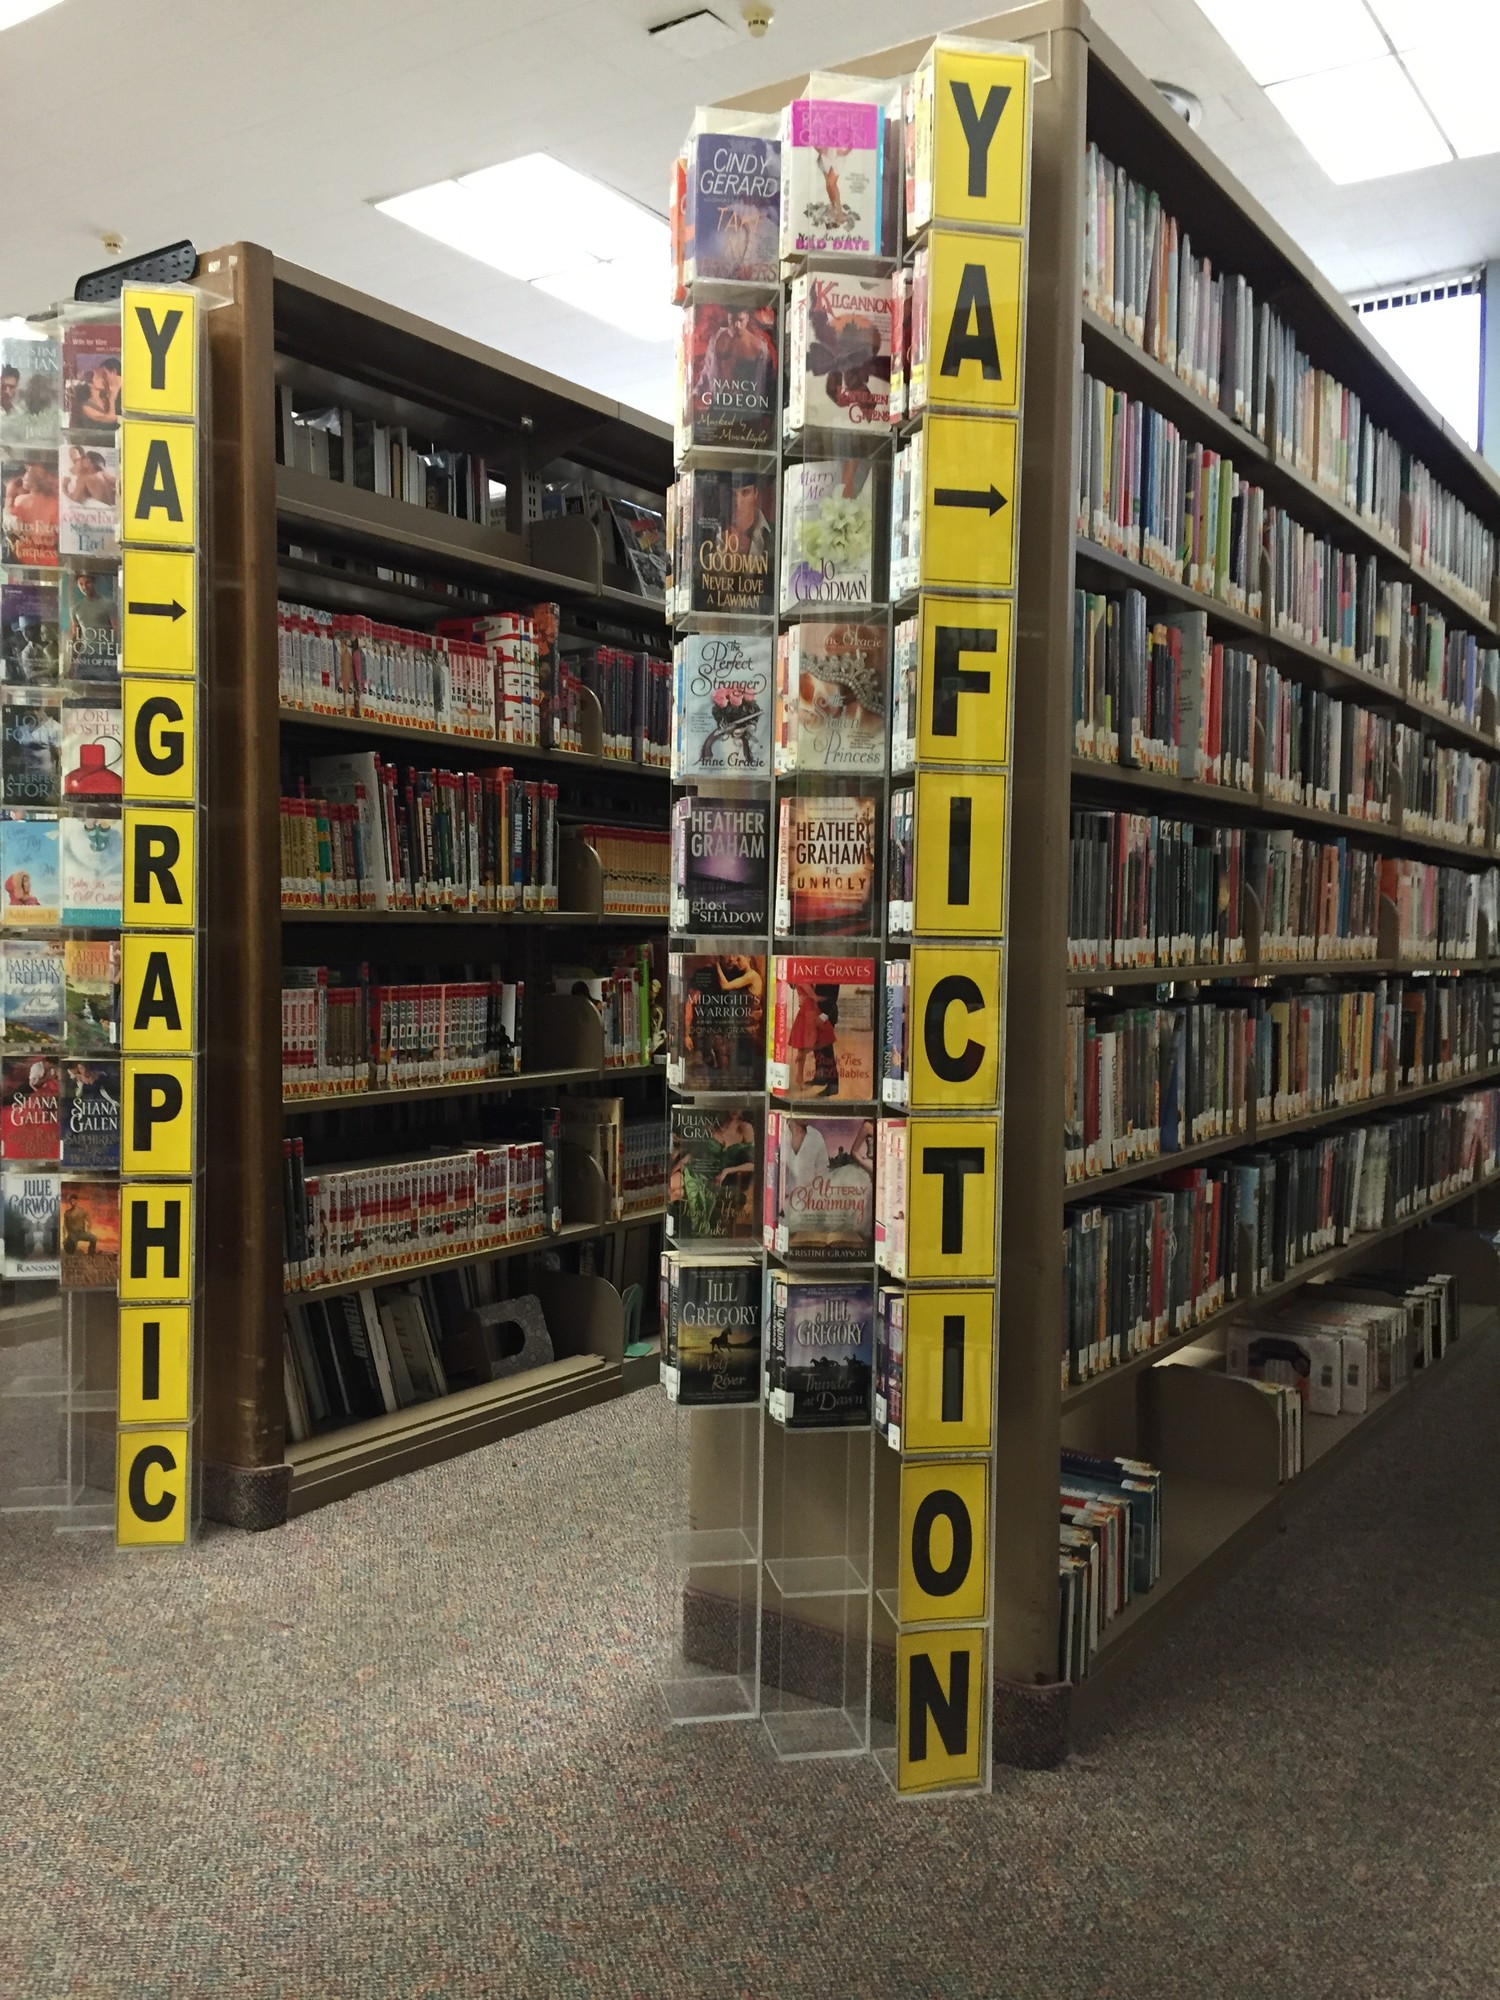 The young adult section would be expanded from two shelves of materials to a room.